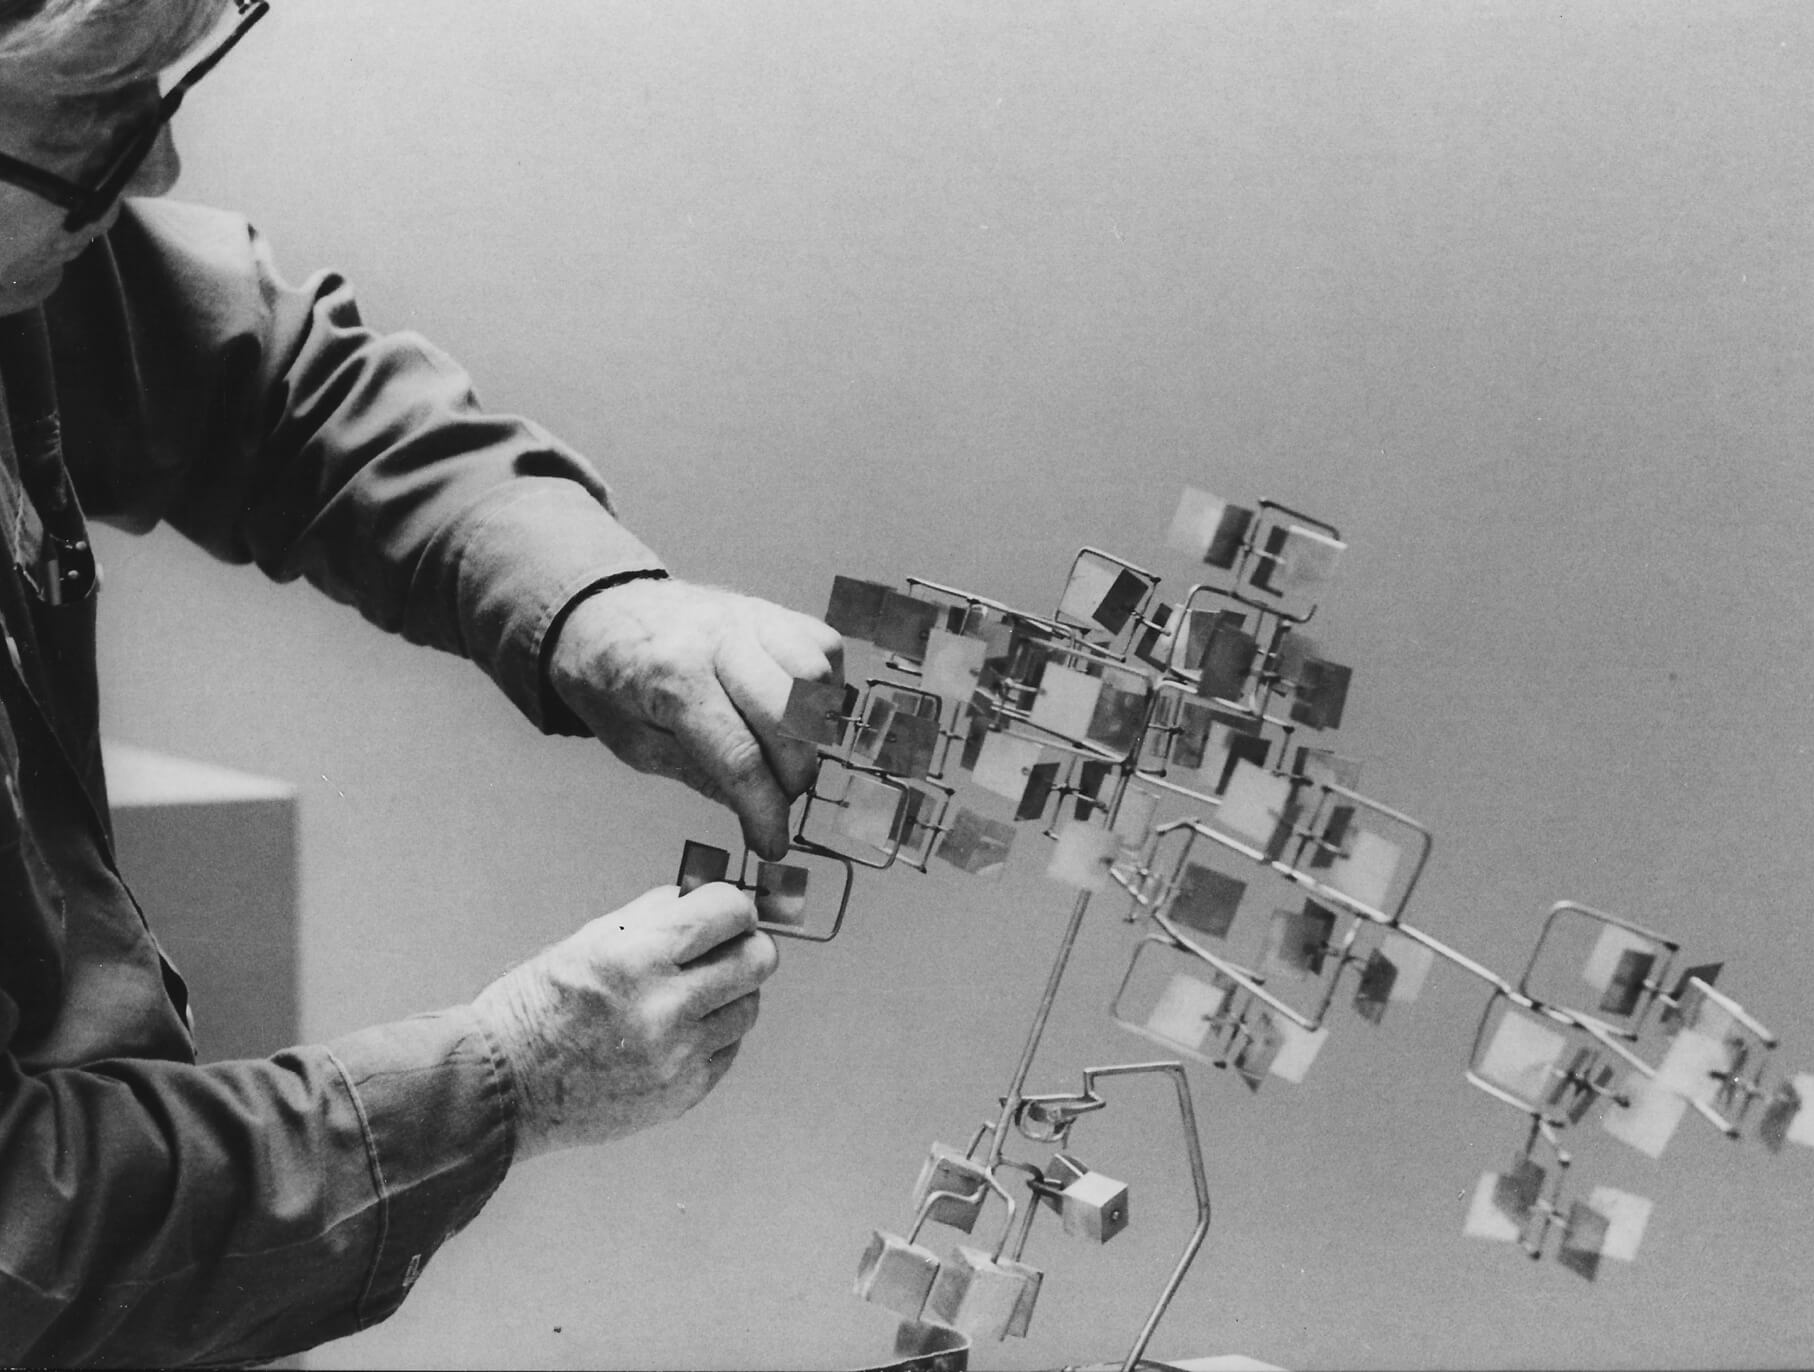 George Rickey installs Study for Crucifera IV (1964) at the Solomon R. Guggenheim Museum, New York, NY, 1979